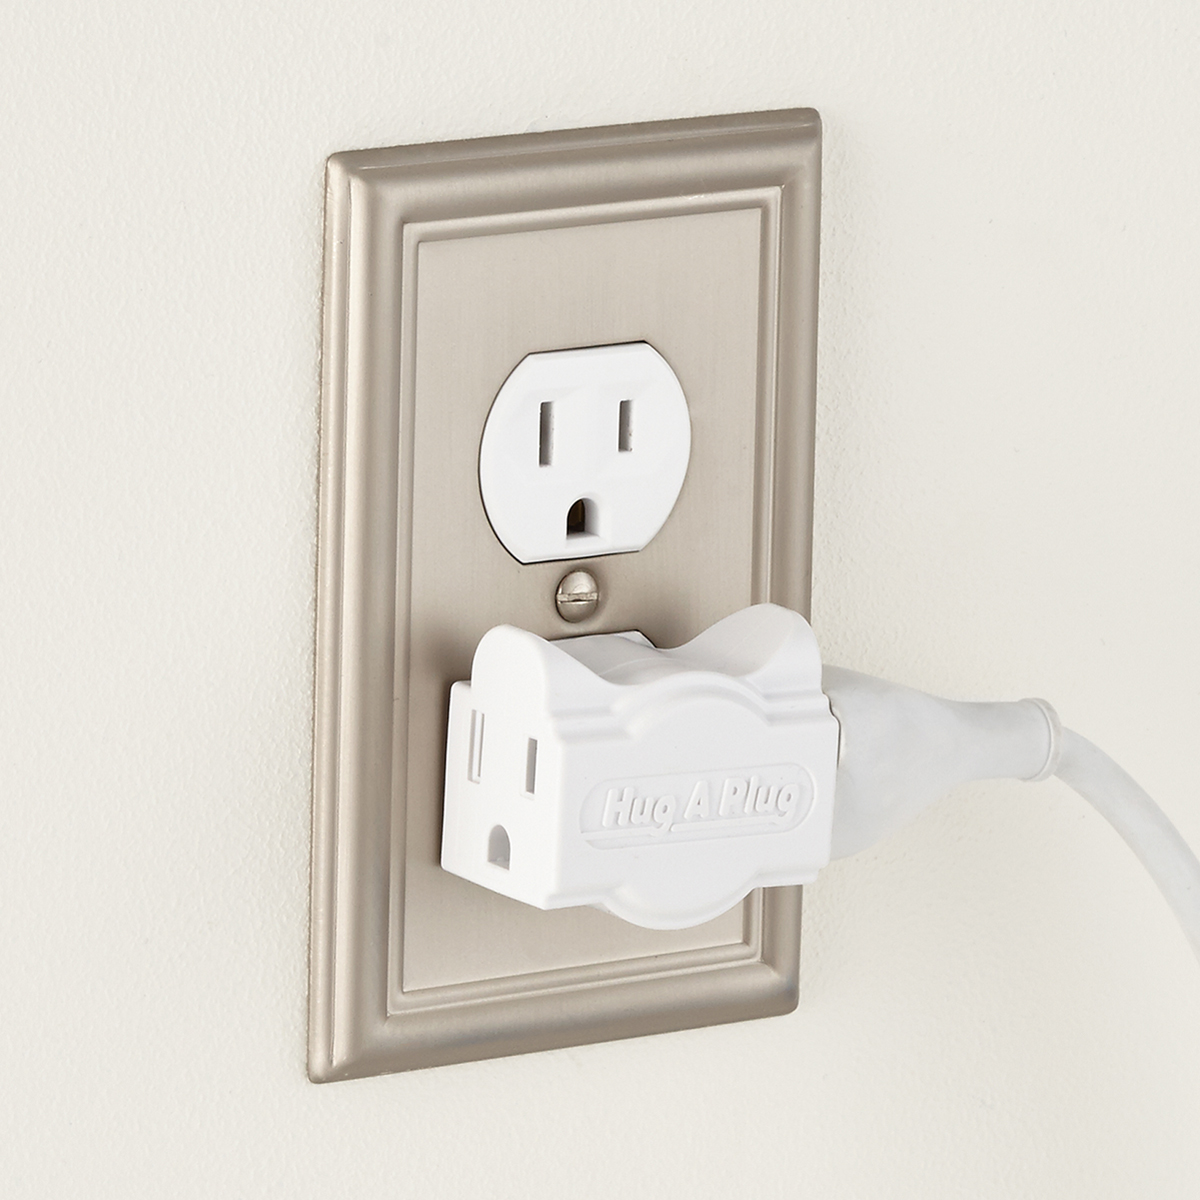 HugAPlug Outlet Extender  The Container Store